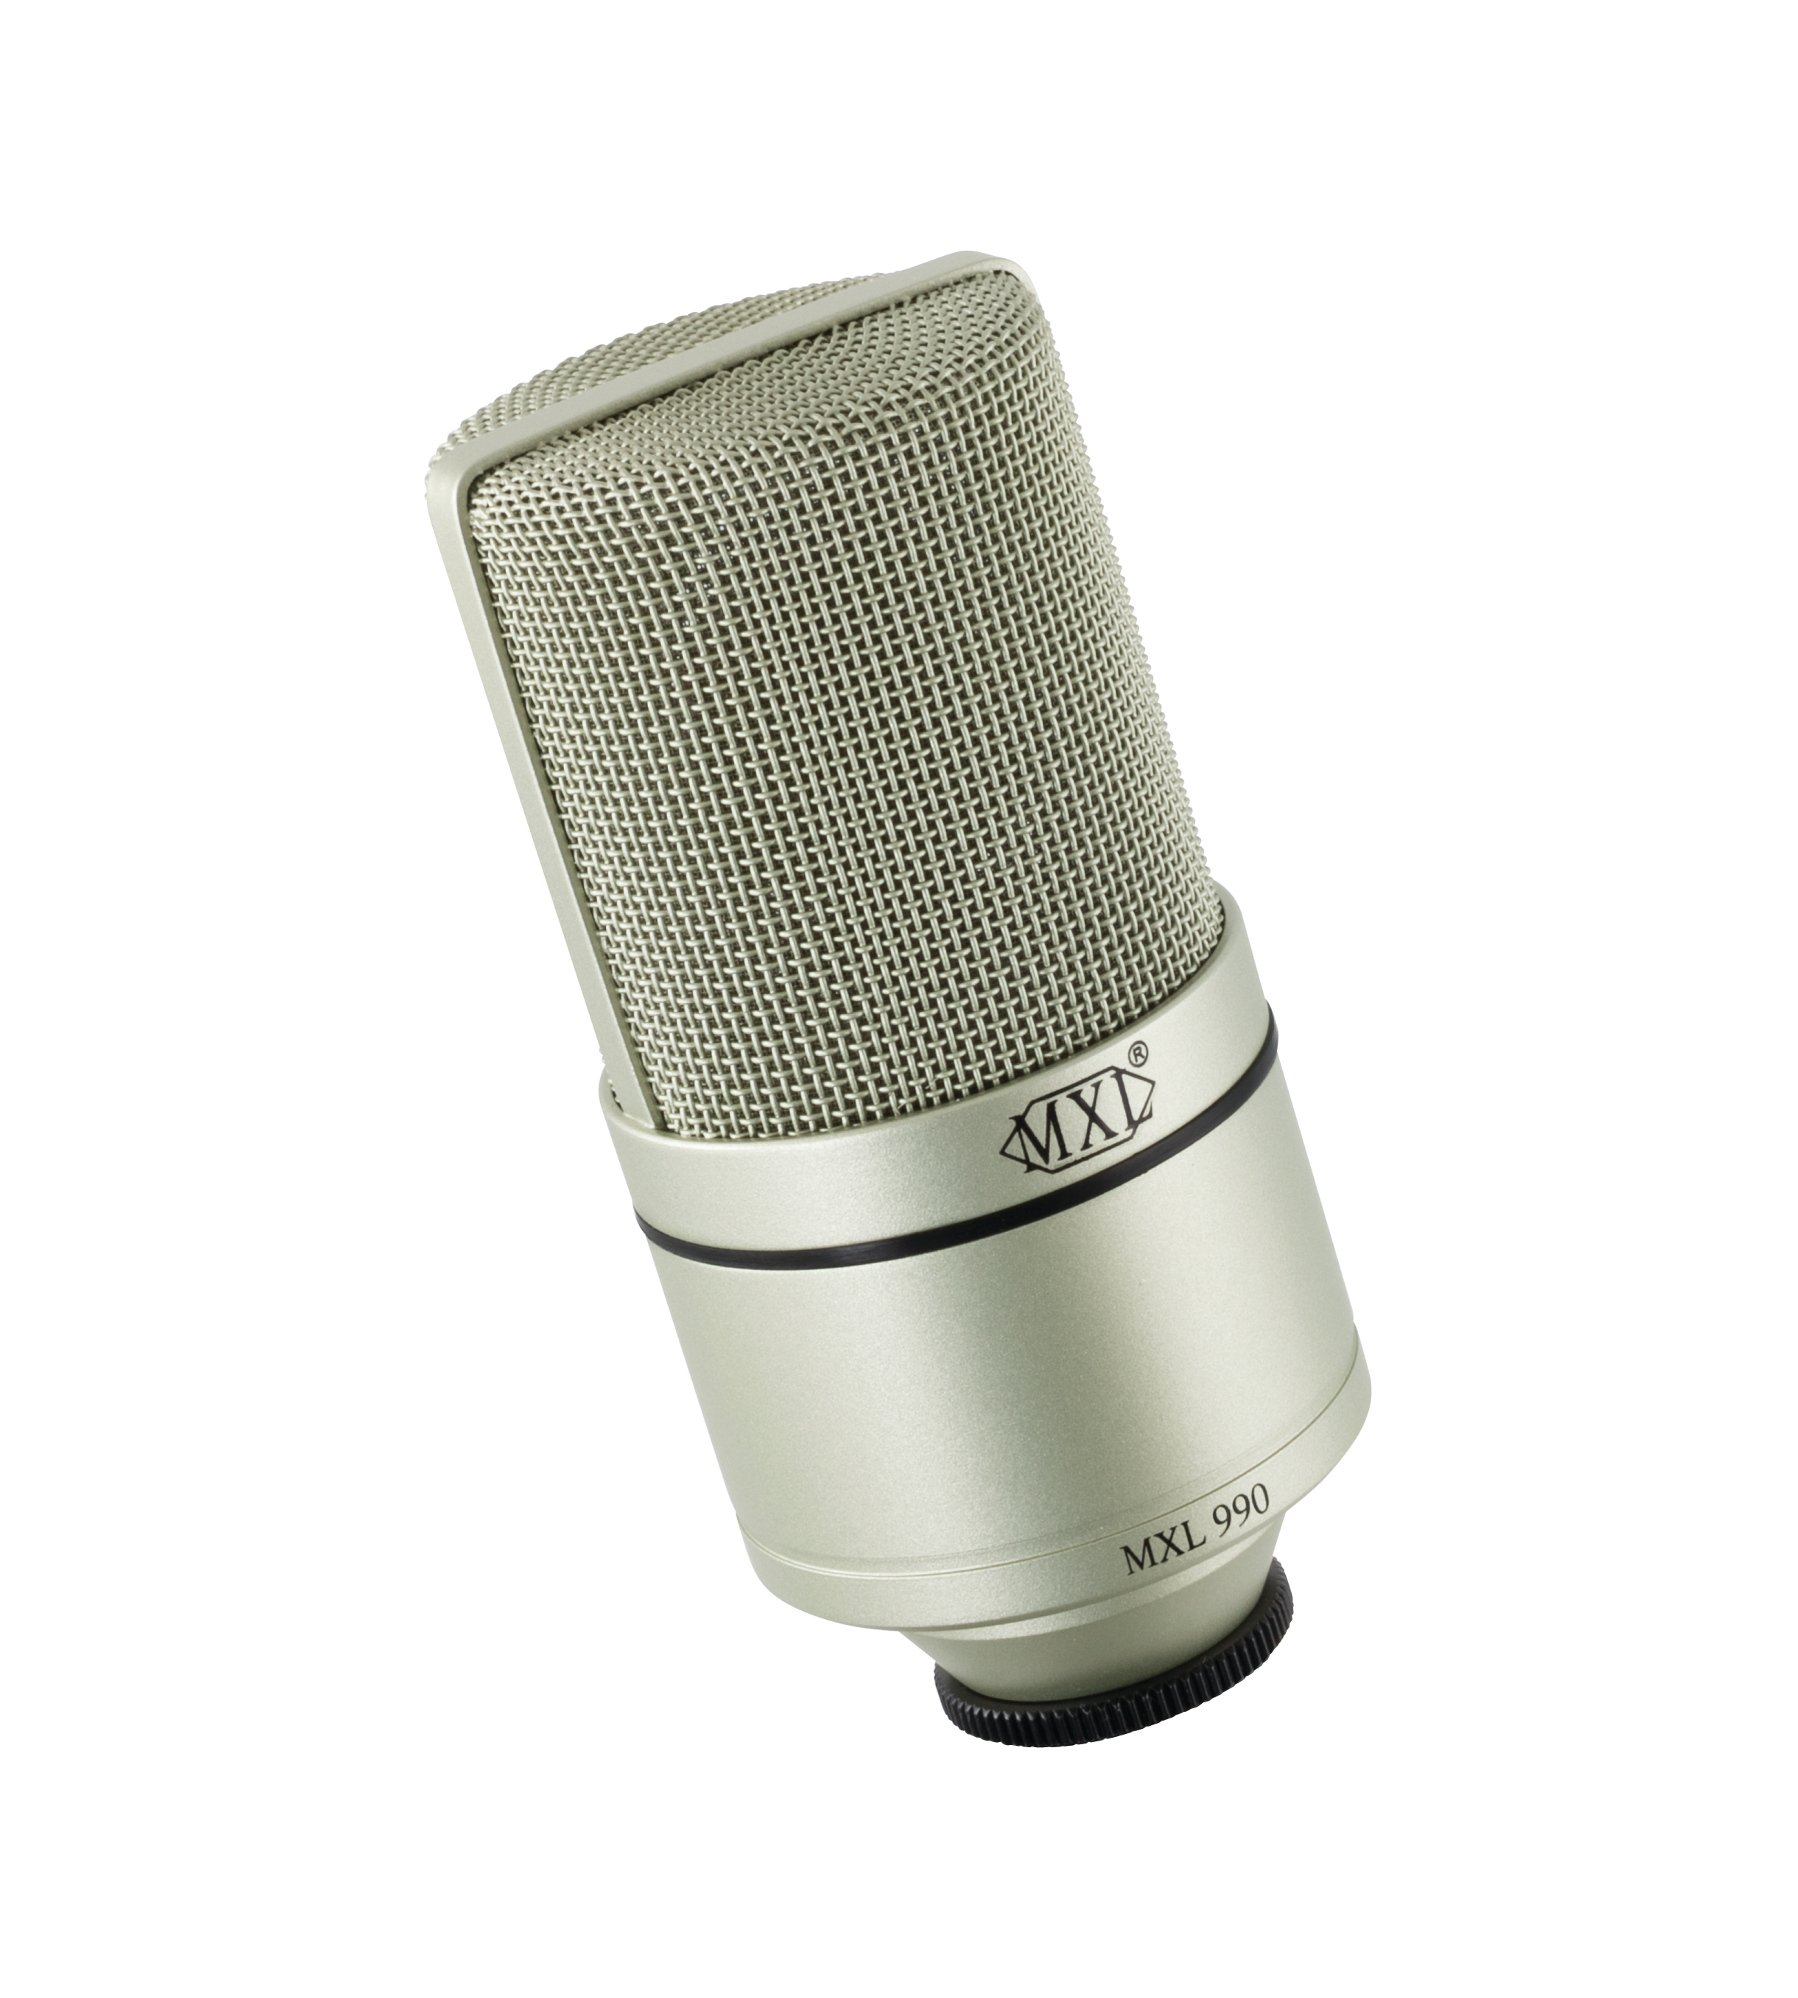 Large Diaphragm Condenser Mic By Mxl 990 Full Compass Systems Microphone Diagram